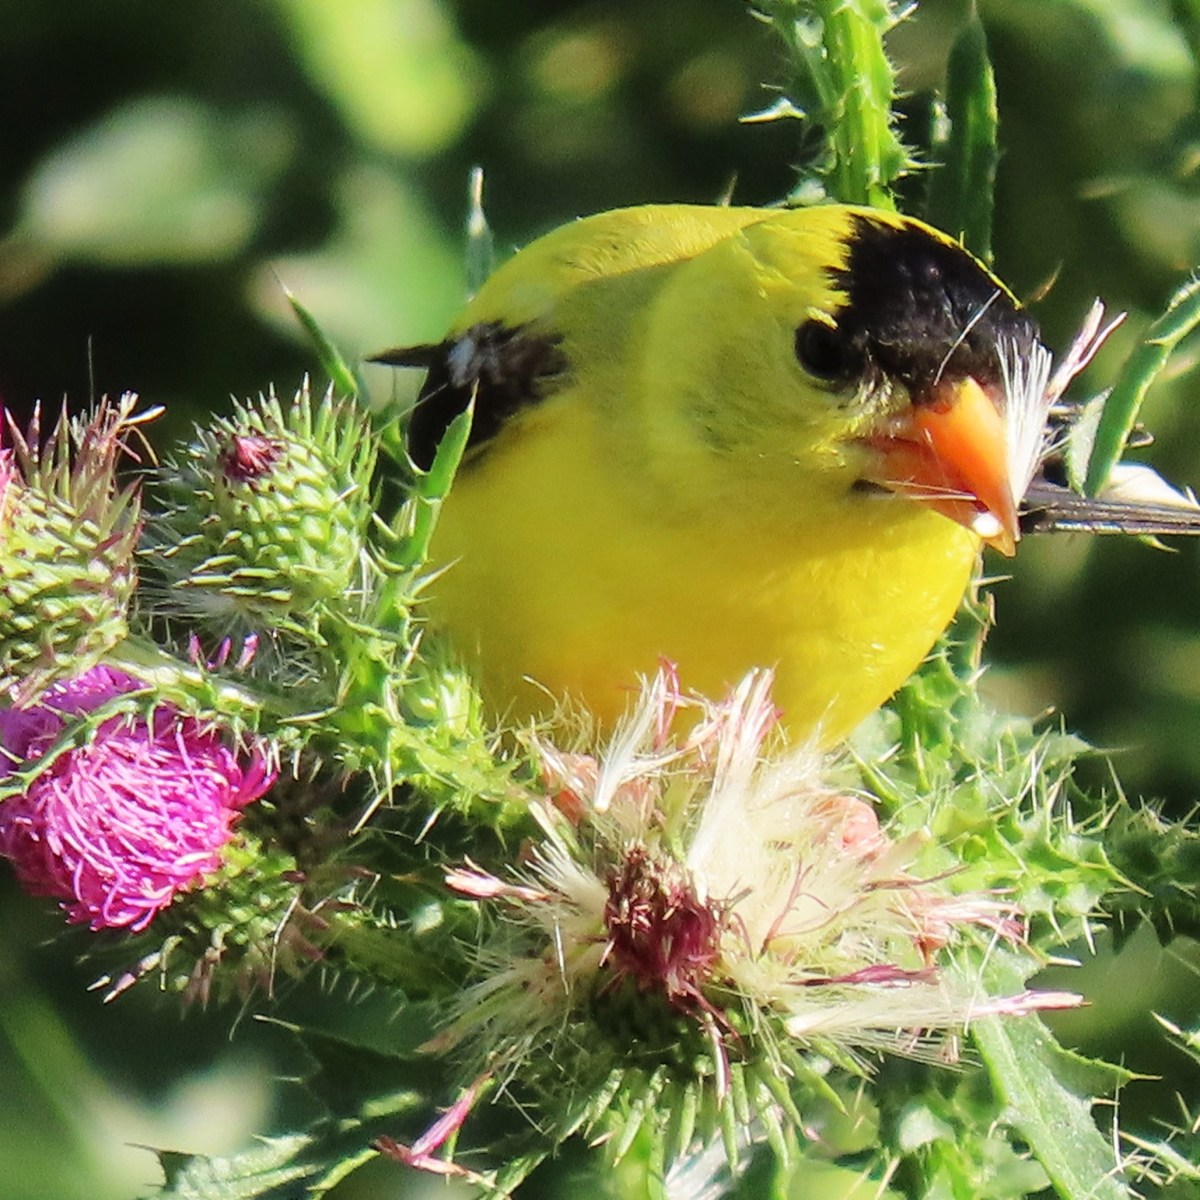 An American Goldfinch gathering thistle seeds